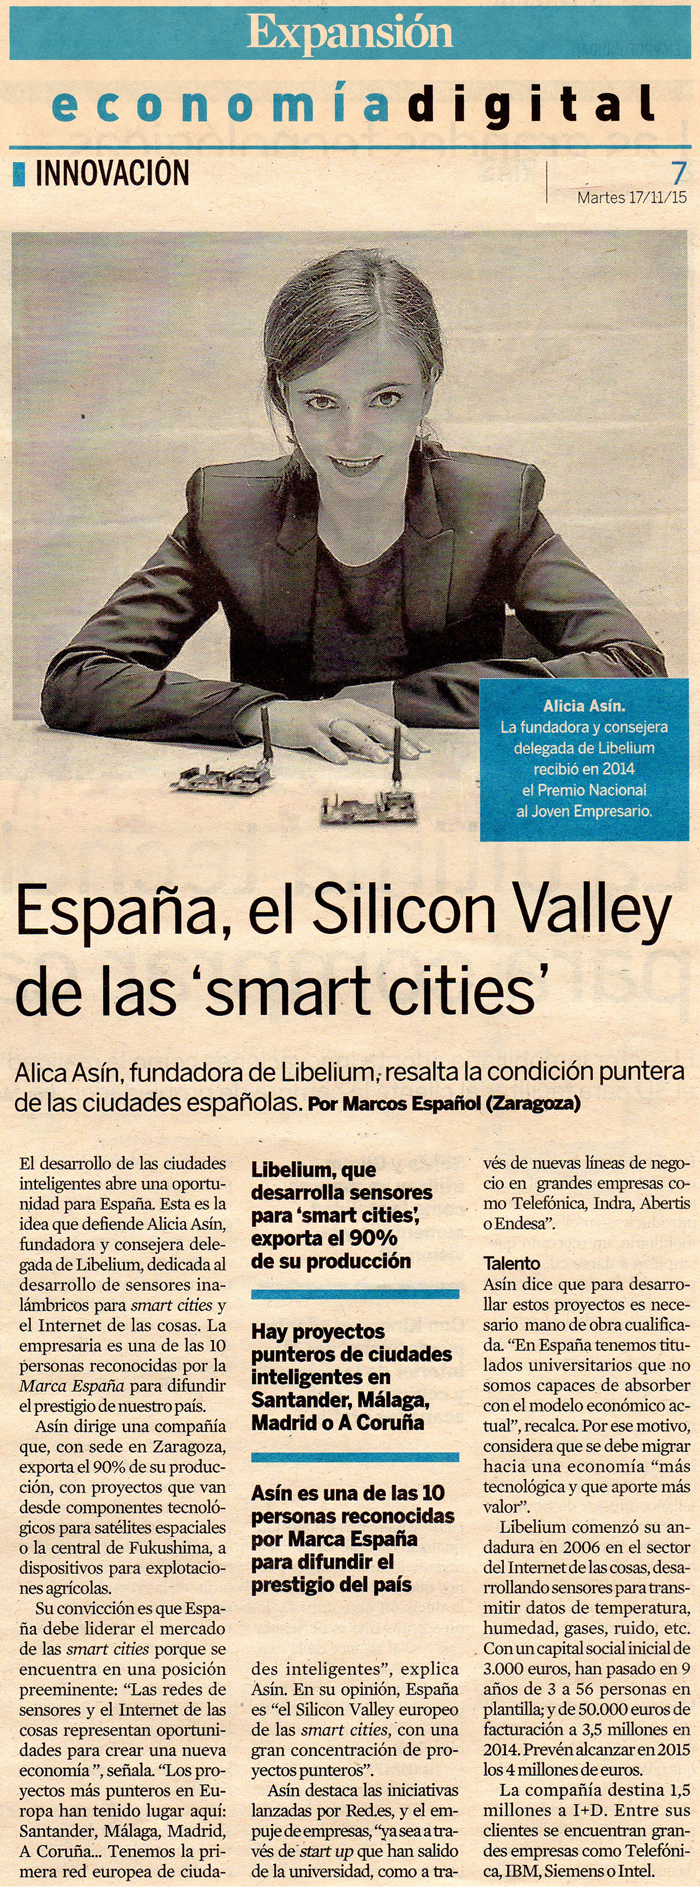 El Silicon Valley de las Smart Cities